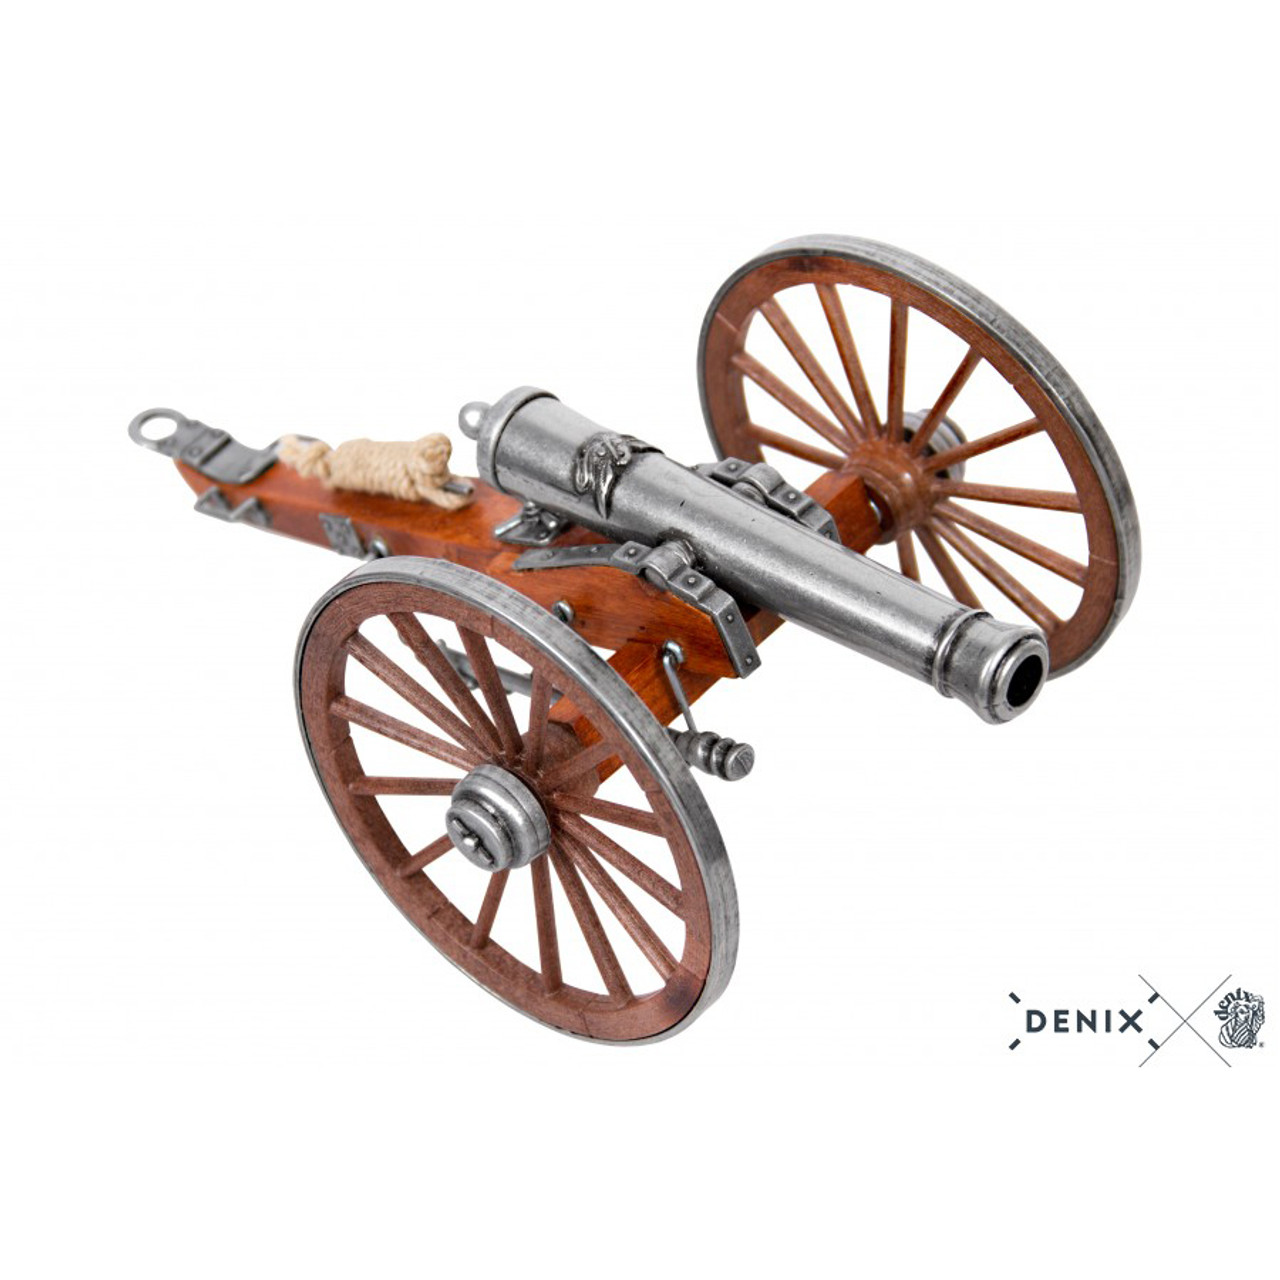 the artillery used during the civil war Field artillery in the american civil war facts kids encyclopedia facts field artillery in the american civil war were cannon that could be moved around the battlefield or could travel with an army unit field artillery could only fight unlimbered (disconnected from the cart and horses that pulled it.